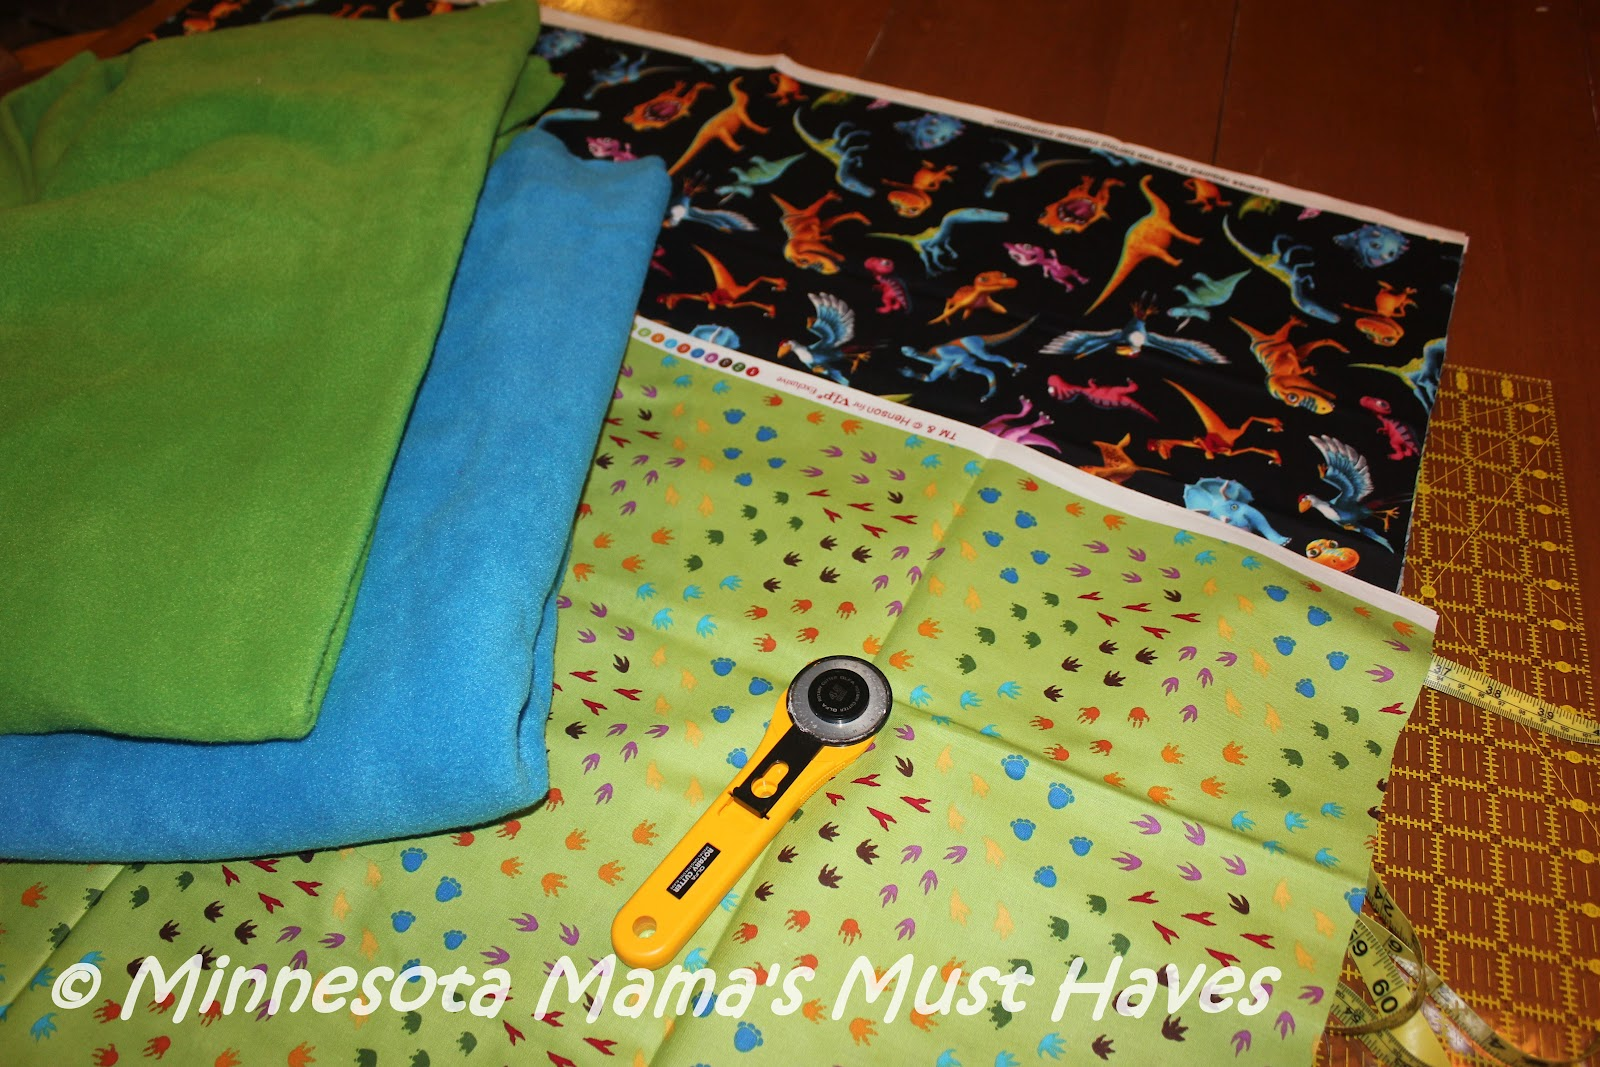 DIY Pillowcase Tutorial! Easy Pillowcase With No Seams Showing! Create Your Own Boutique Quality Pillowcase! & DIY Pillowcase Tutorial! Easy Pillowcase With No Seams Showing! pillowsntoast.com